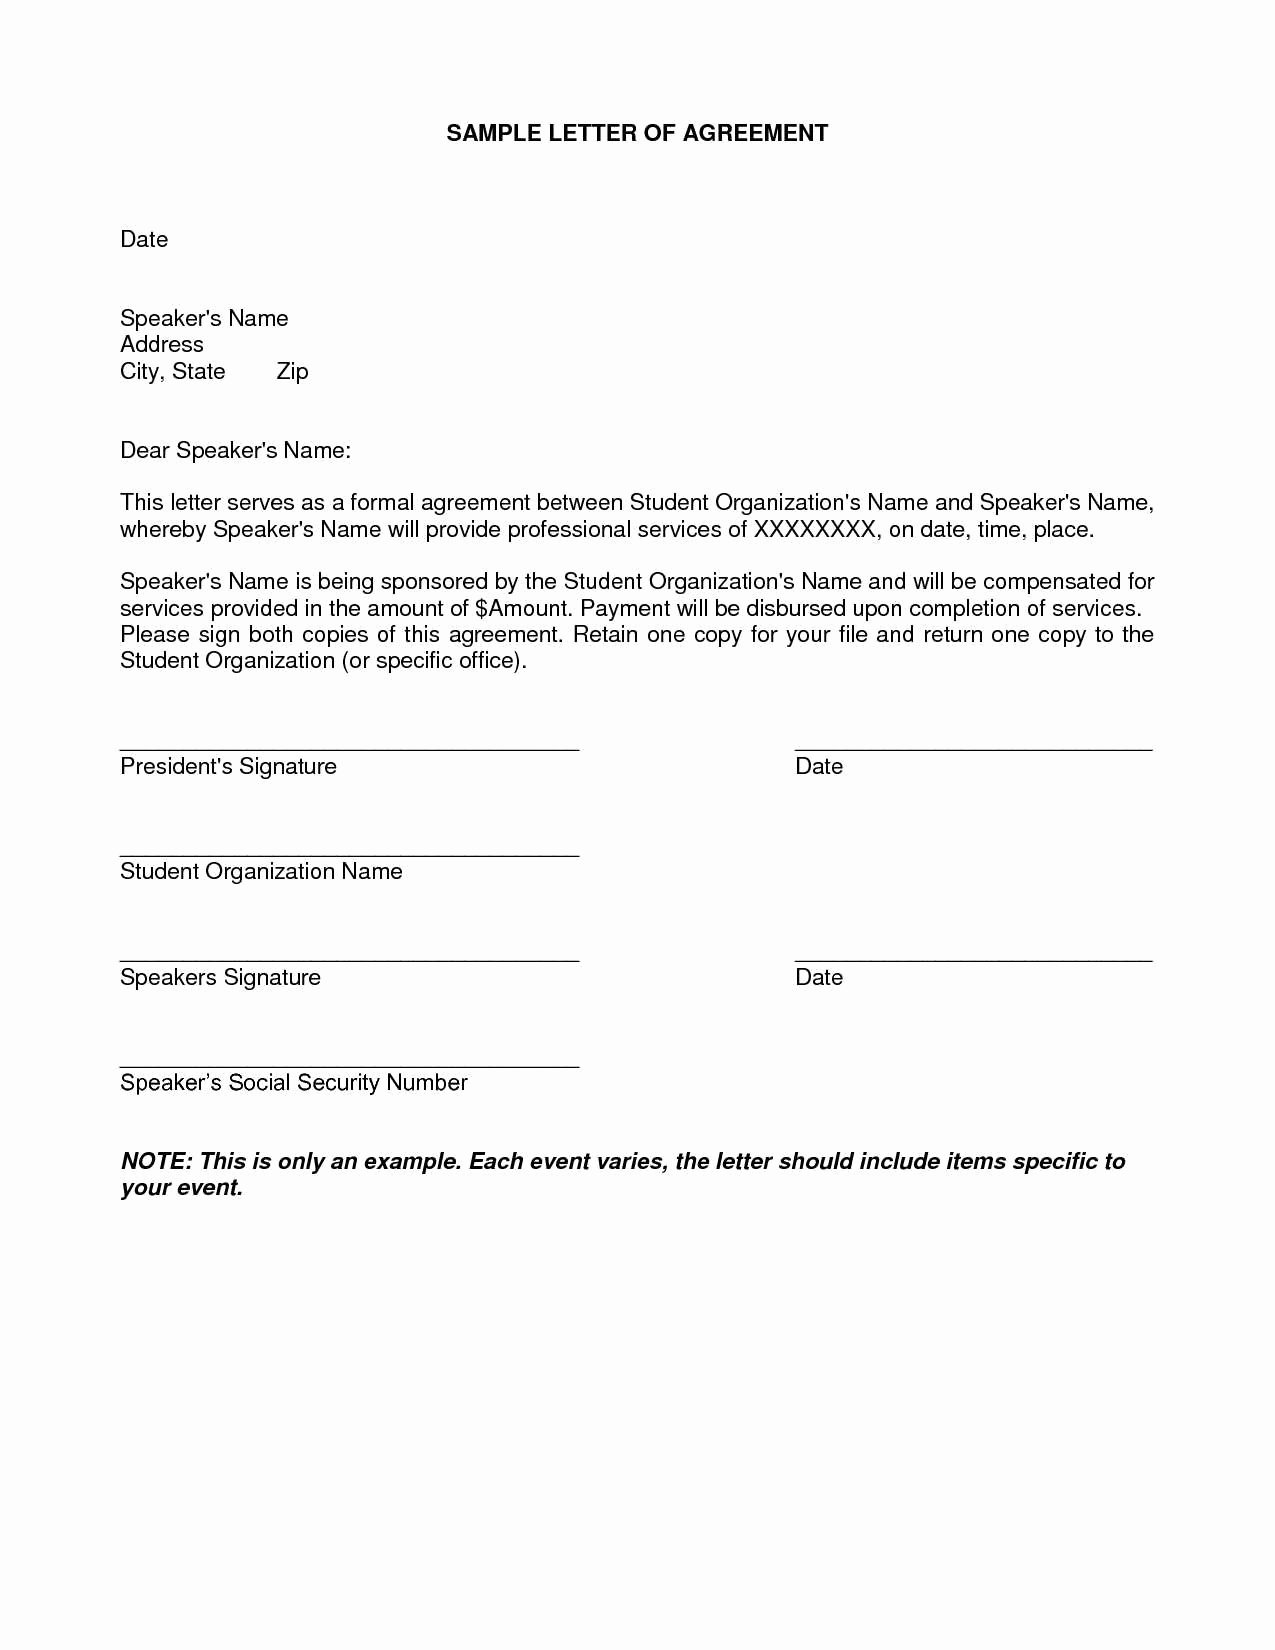 Installment Payment Agreement Template Fresh Installment Payment Agreement Letter Template Examples